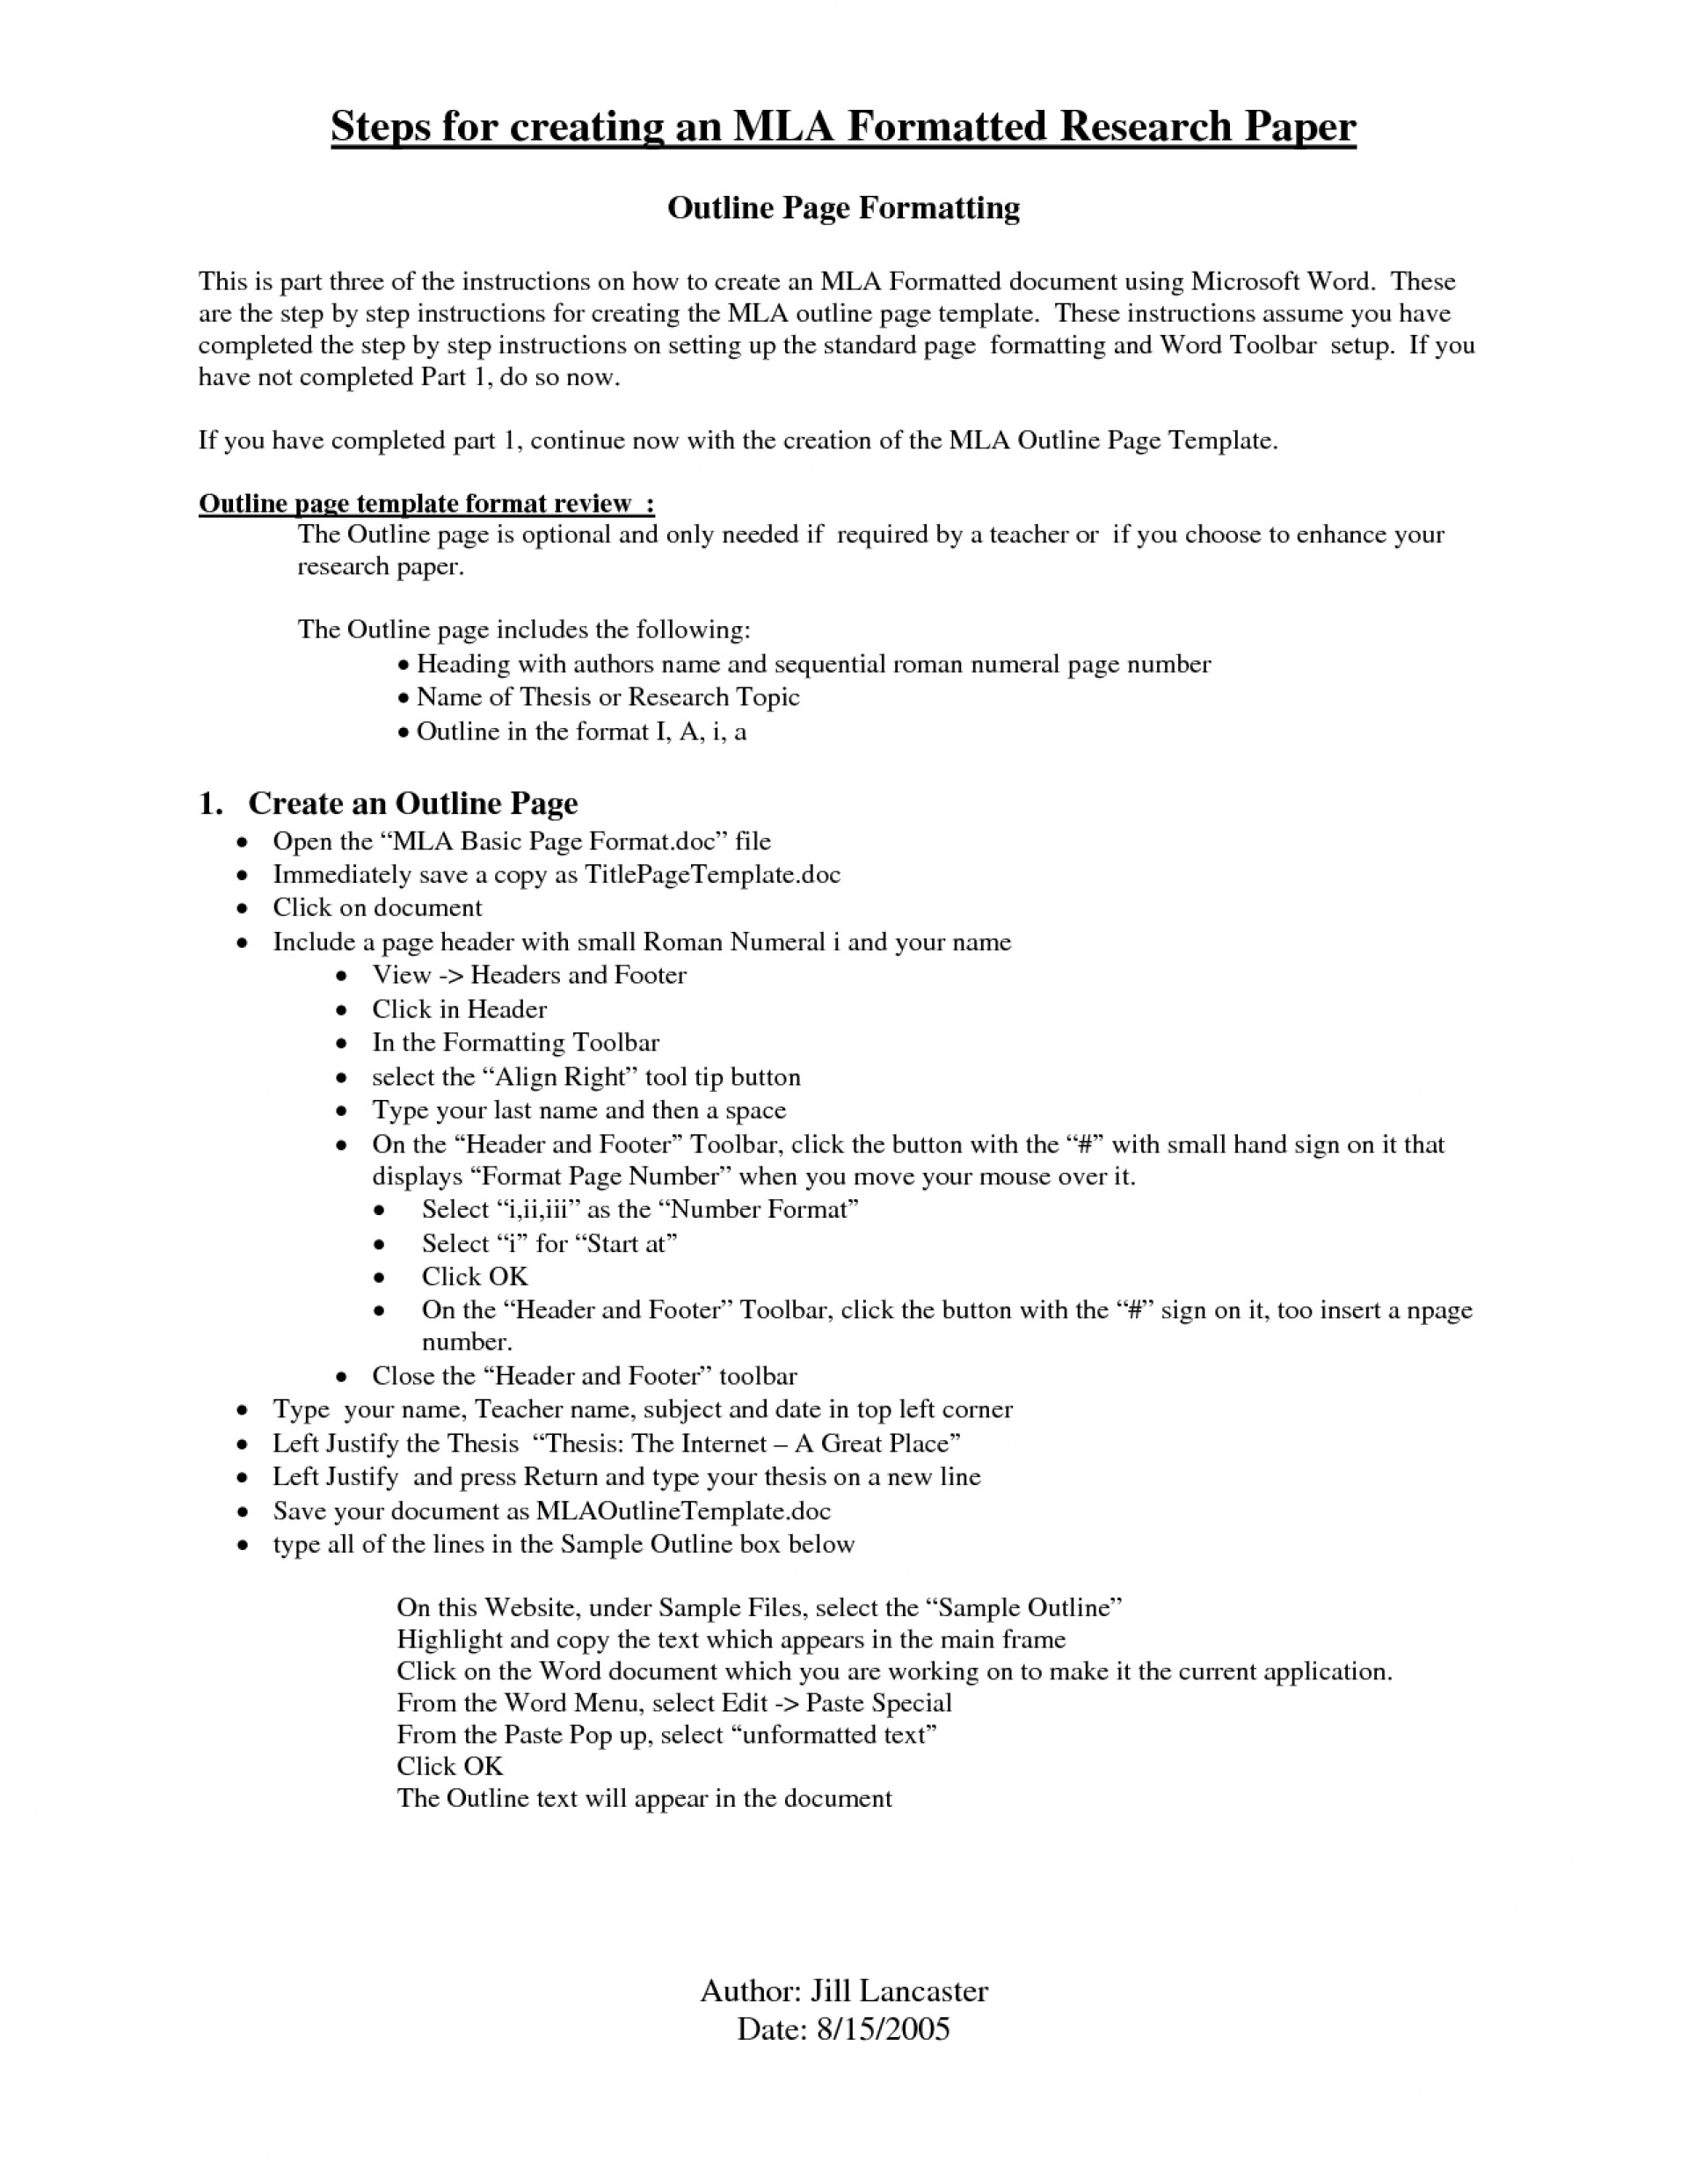 007 Essay Format Mla Researchs Outline Template Heading Title Page College Without Style Paragraph Example Sample Dreaded Research Paper How To Write A 1920